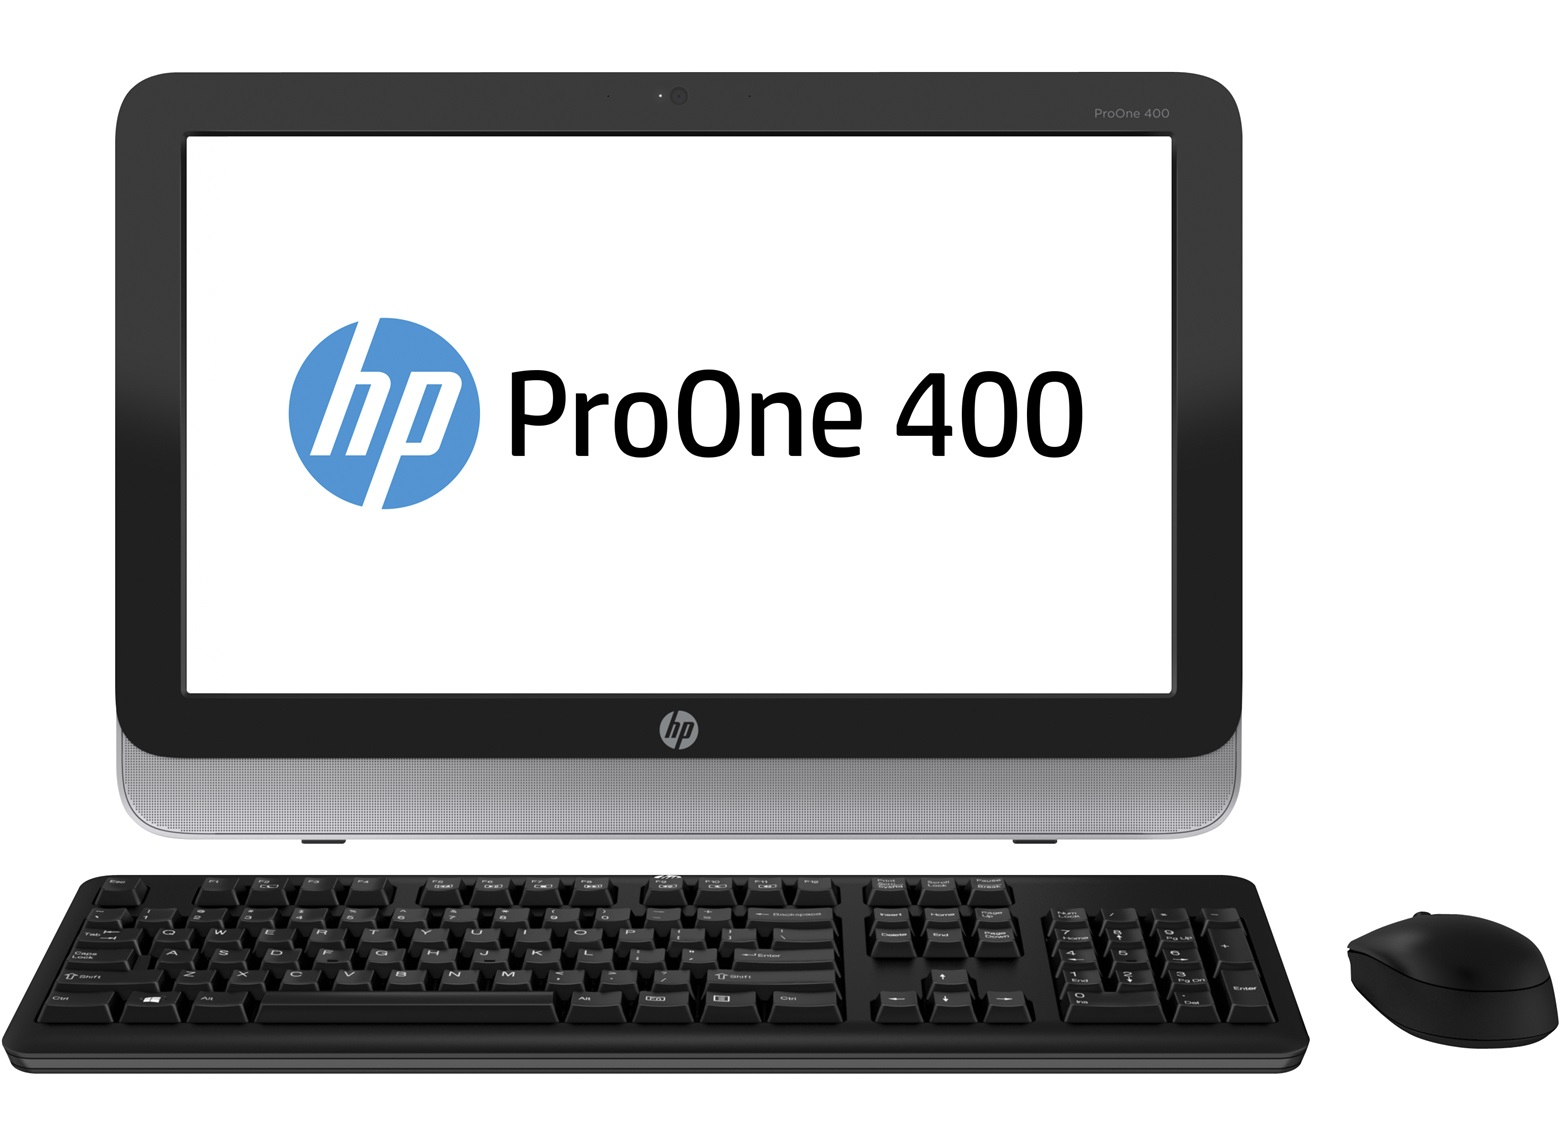 HP ProOne 400 19.5i LED AIO Intel Core i3-4160 4GB DDR3-1600 1TB Optical Disc Drive WLANabgn Win7Pro64+Win8.1PROlic 1/1/1